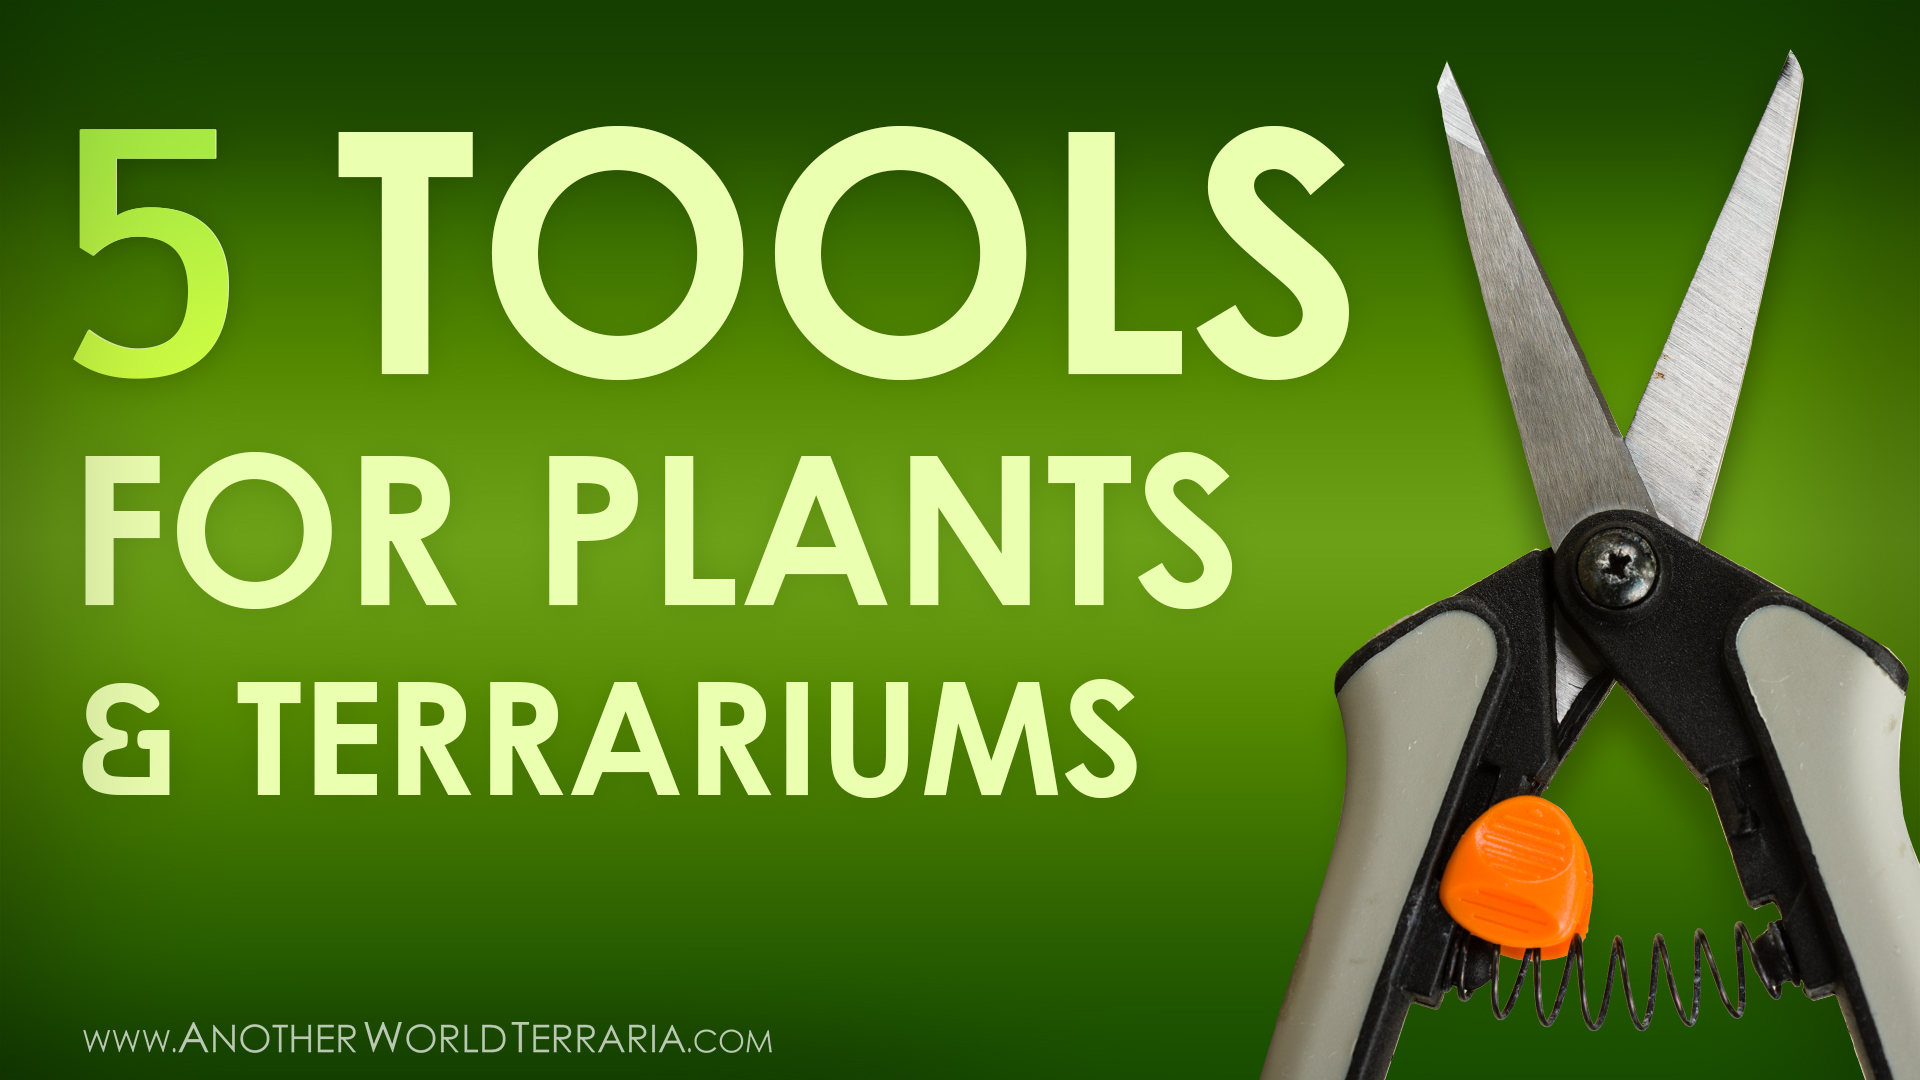 5 Most Used Tools for Horticulture & Terrariums - Photo of Micro Shears